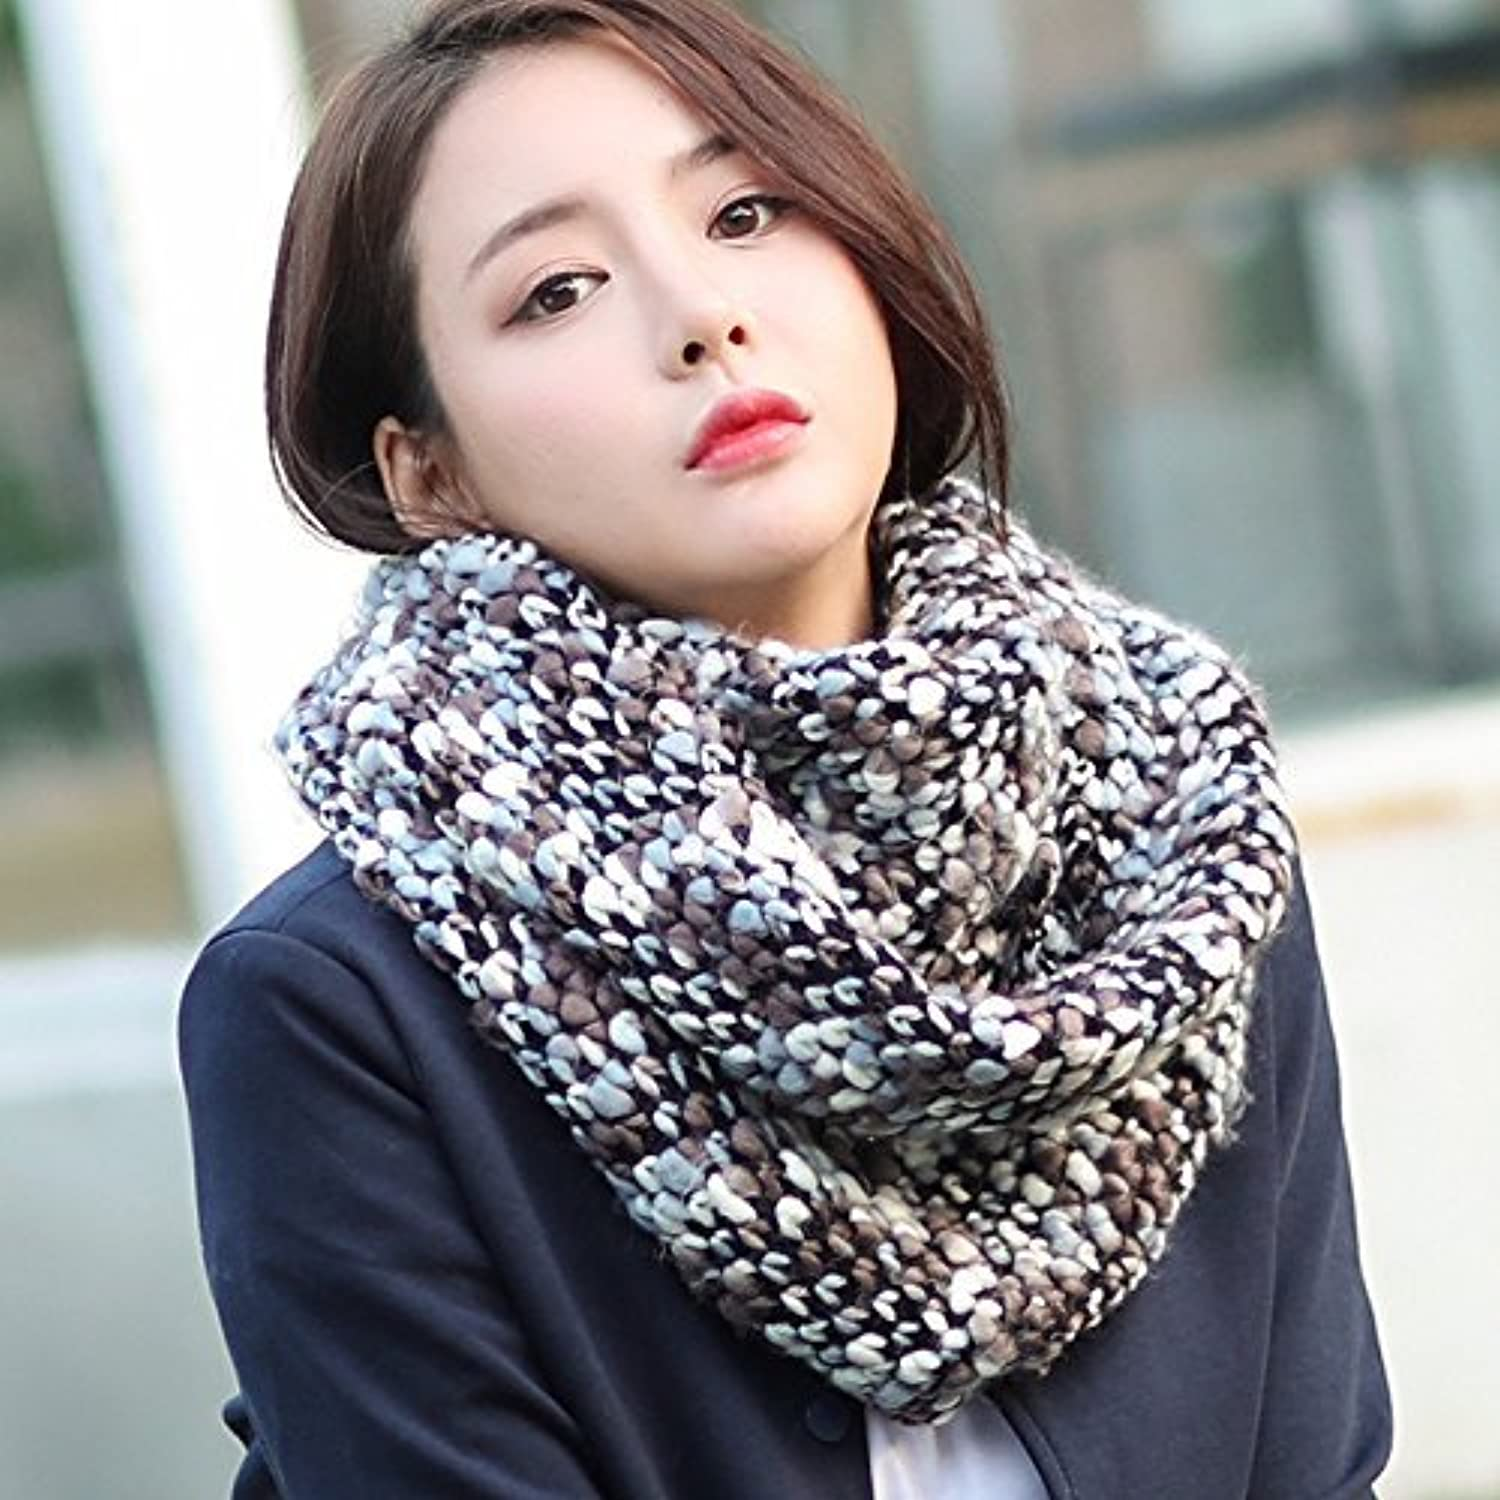 SED ScarfKnitting Scarves Women Autumn and Winter Thick Warm Scarf Imitation Cashmere Scarf Female Autumn and Winter Korean Students Knitted Shawl Long